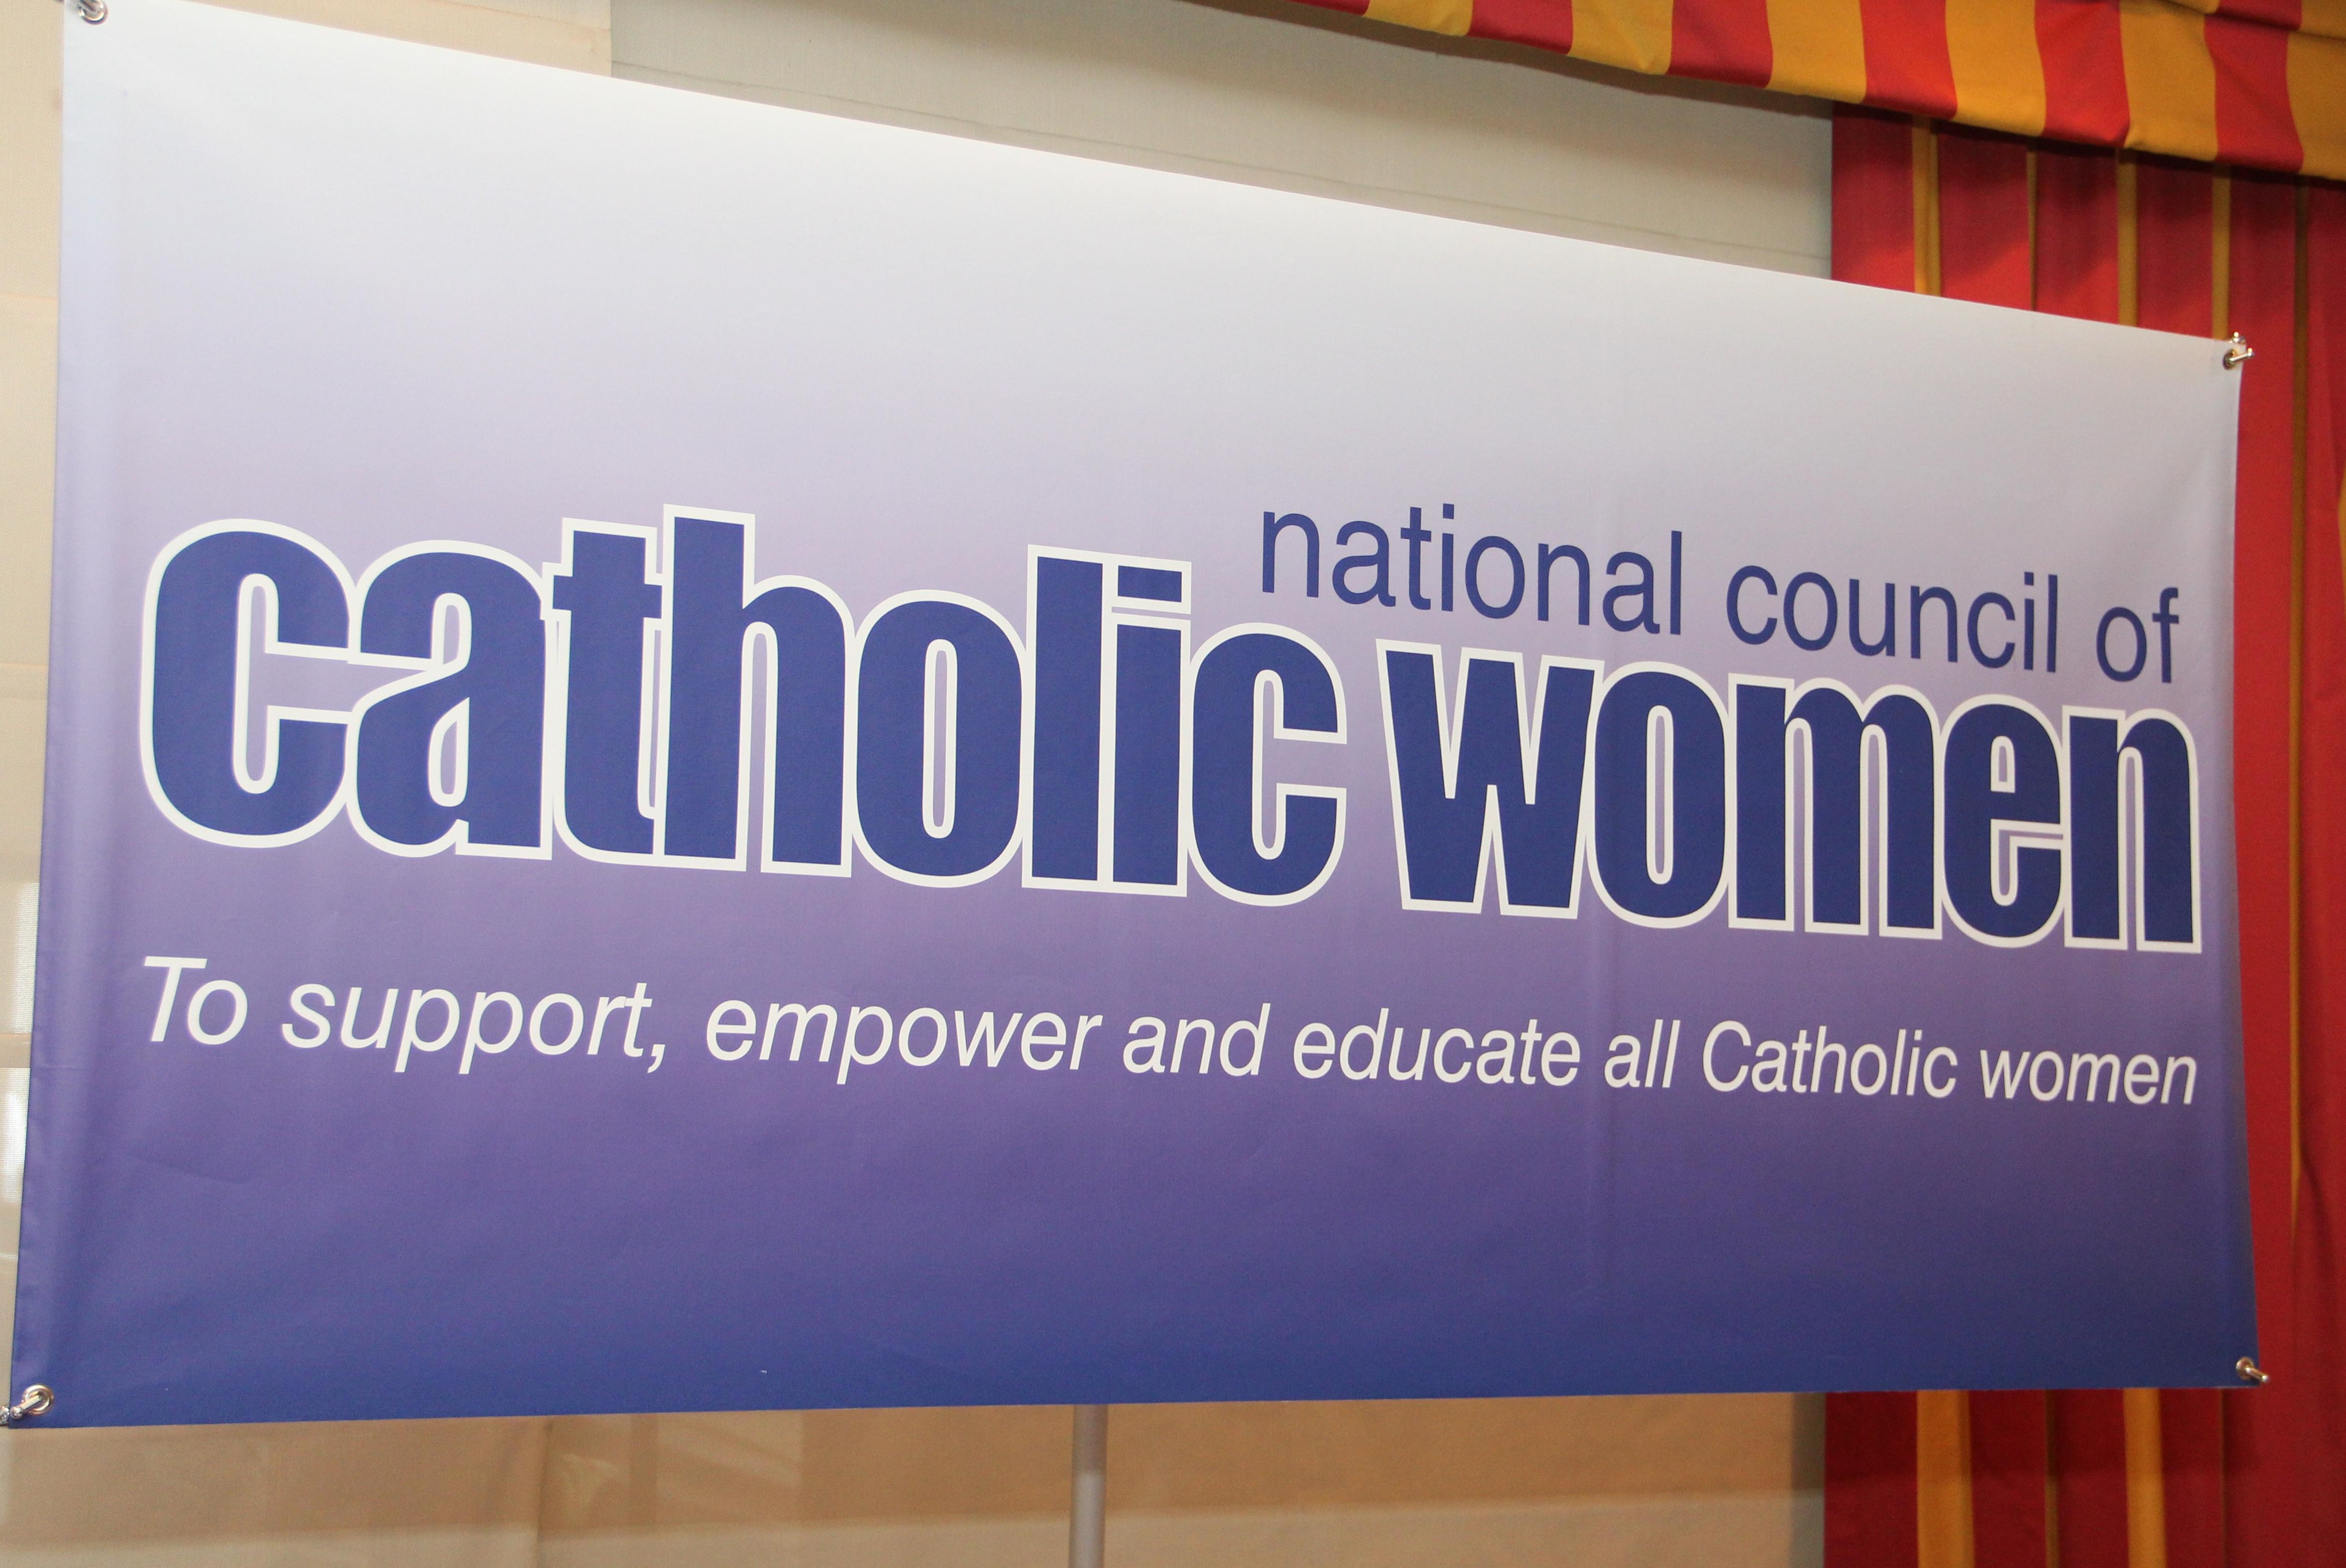 CatholicMatch Sponsors National Catholic Women's Conference